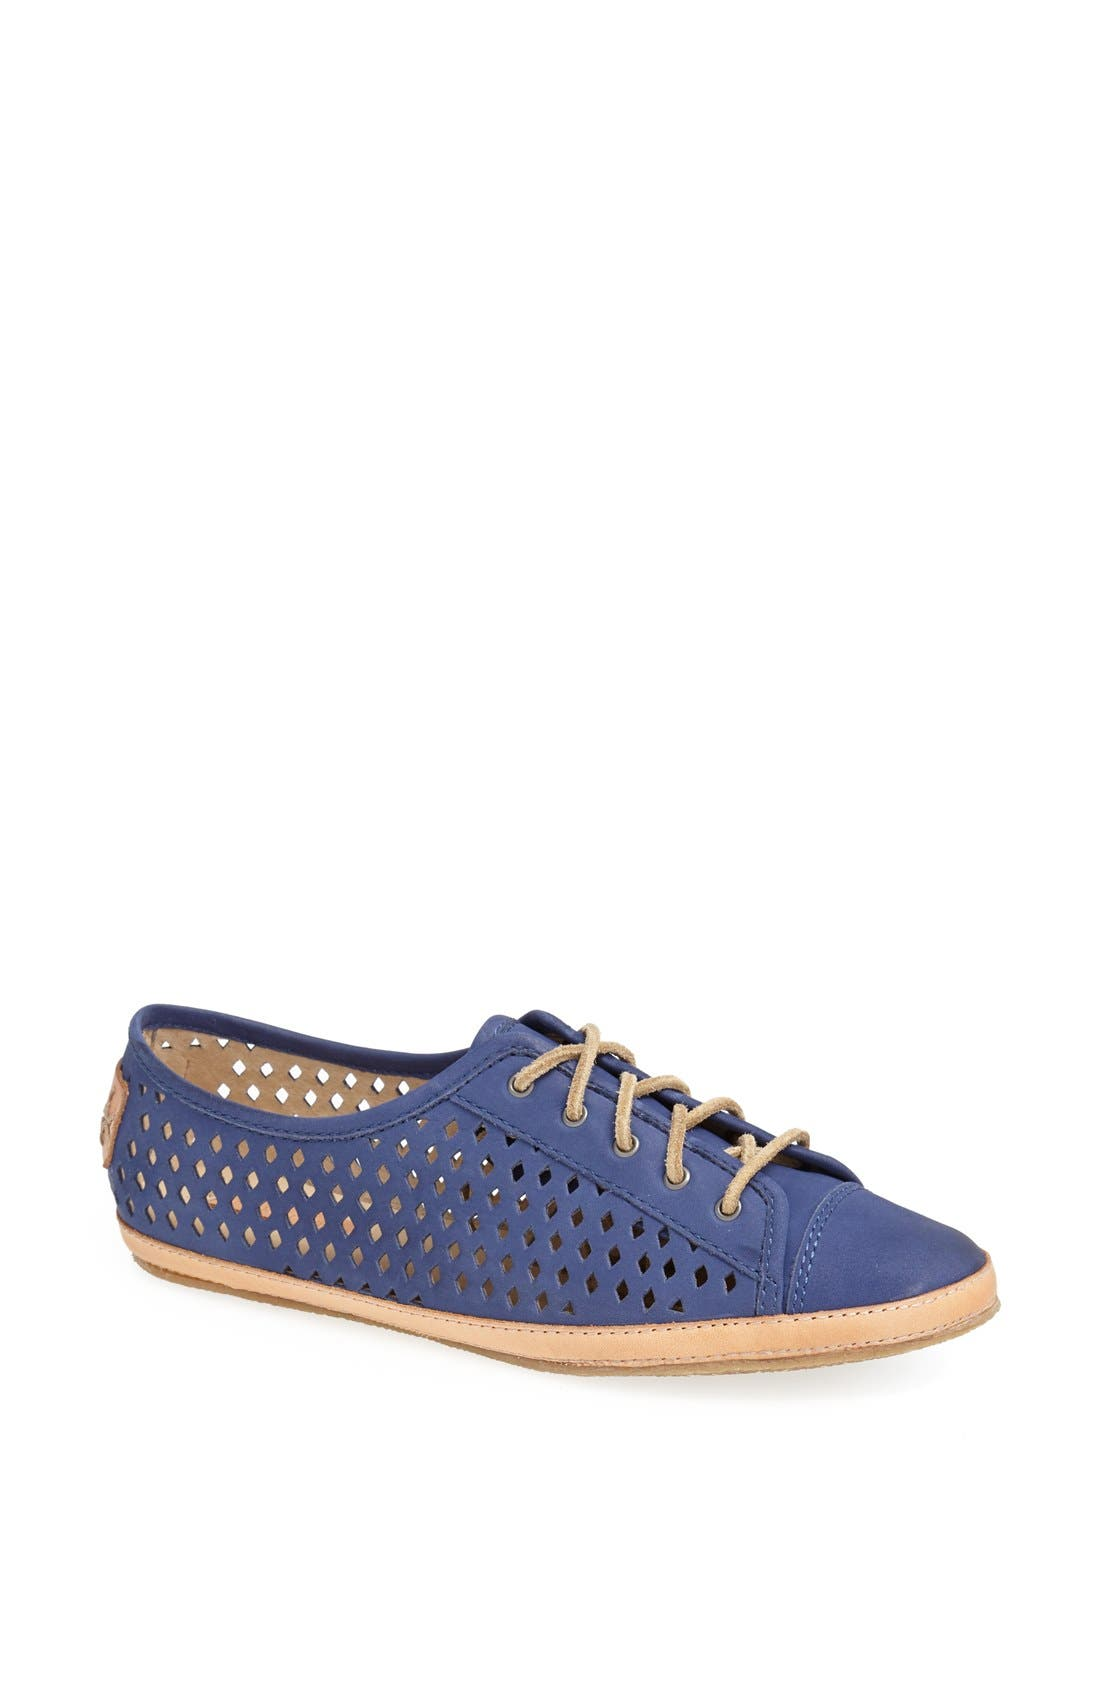 Main Image - Frye 'Teagan Low' Perforated Leather Lace-Up